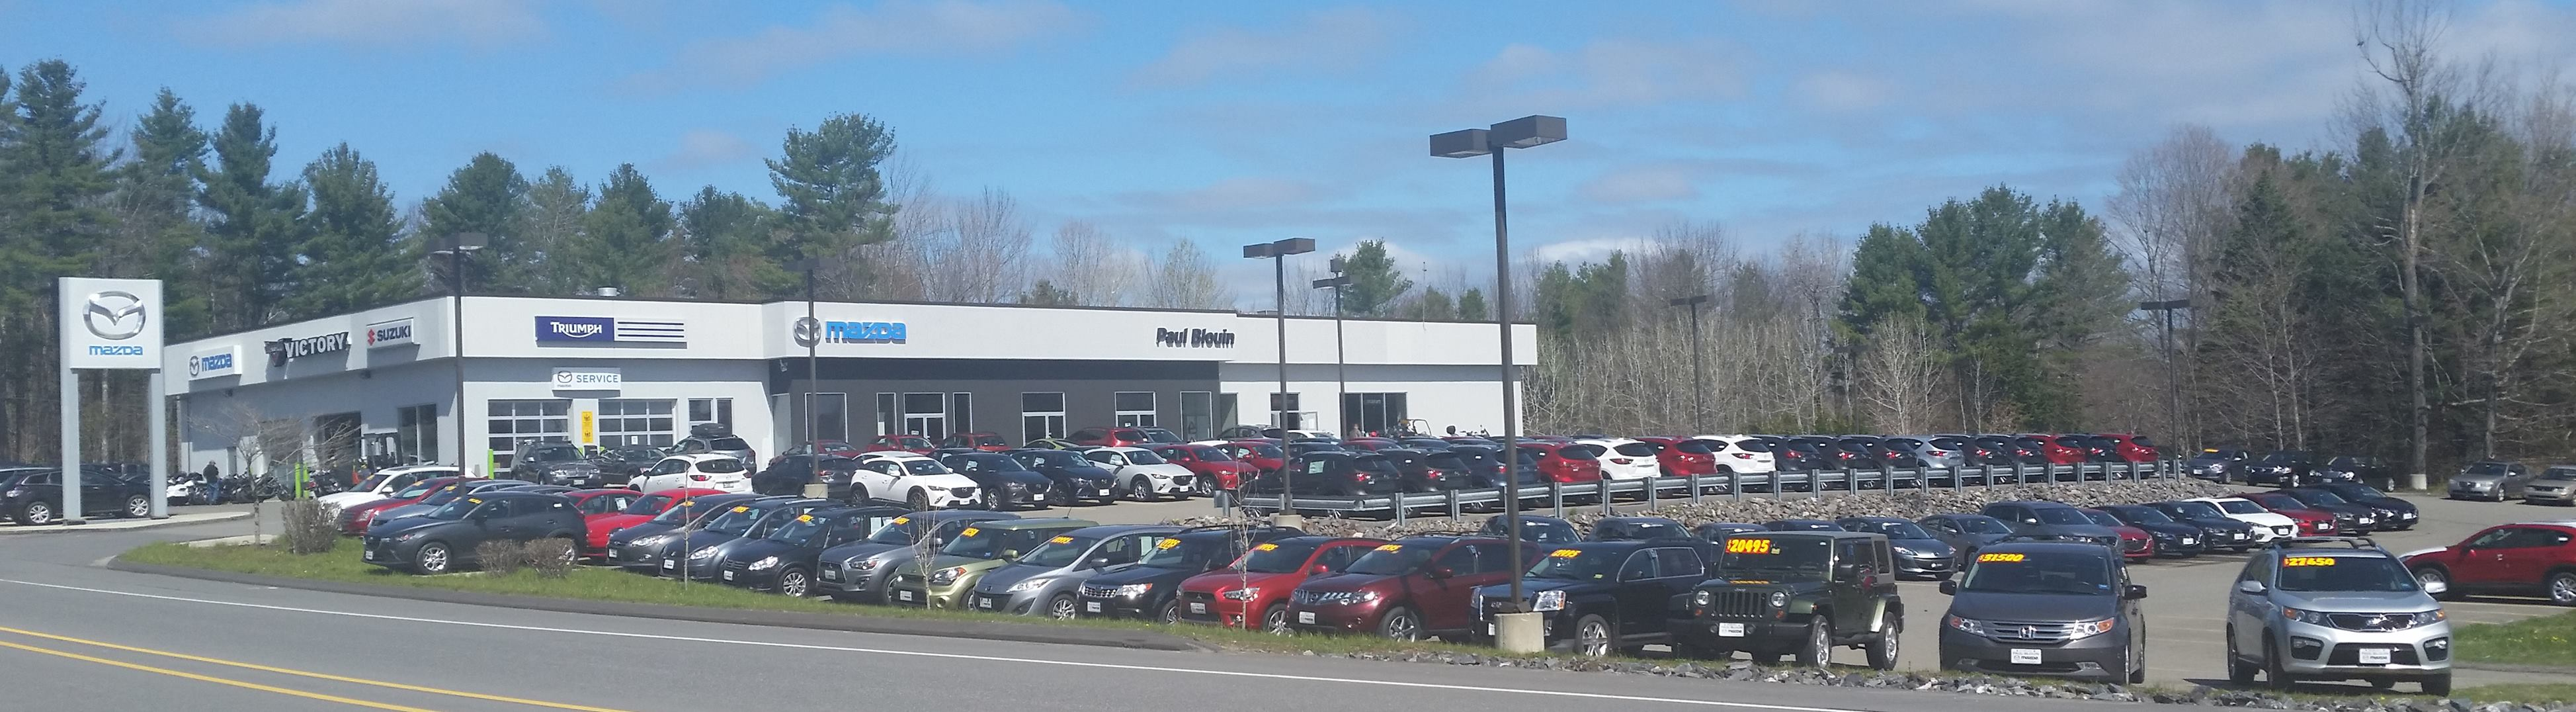 About Paul Blouin Mazda In Augusta ME - Mazda dealerships in maine